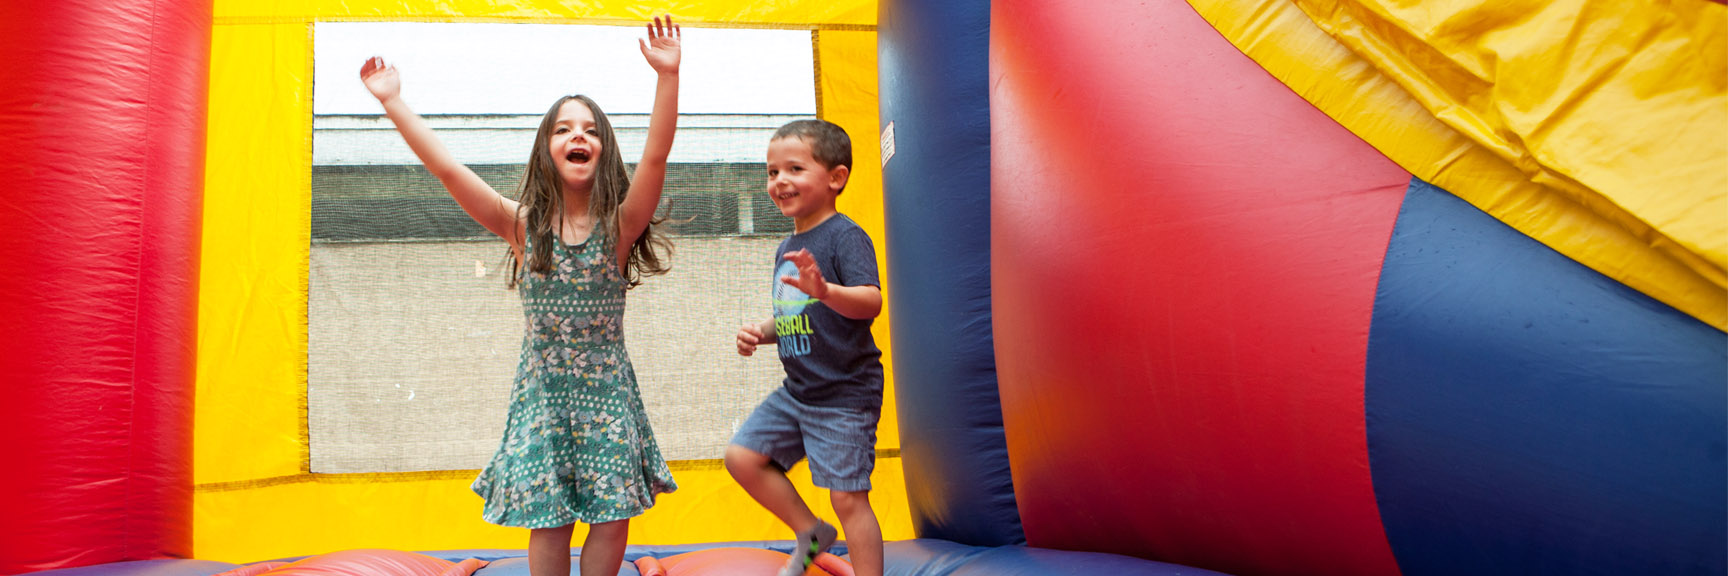 Jewish Community Center Of The Lehigh Valley Family Events Jcc